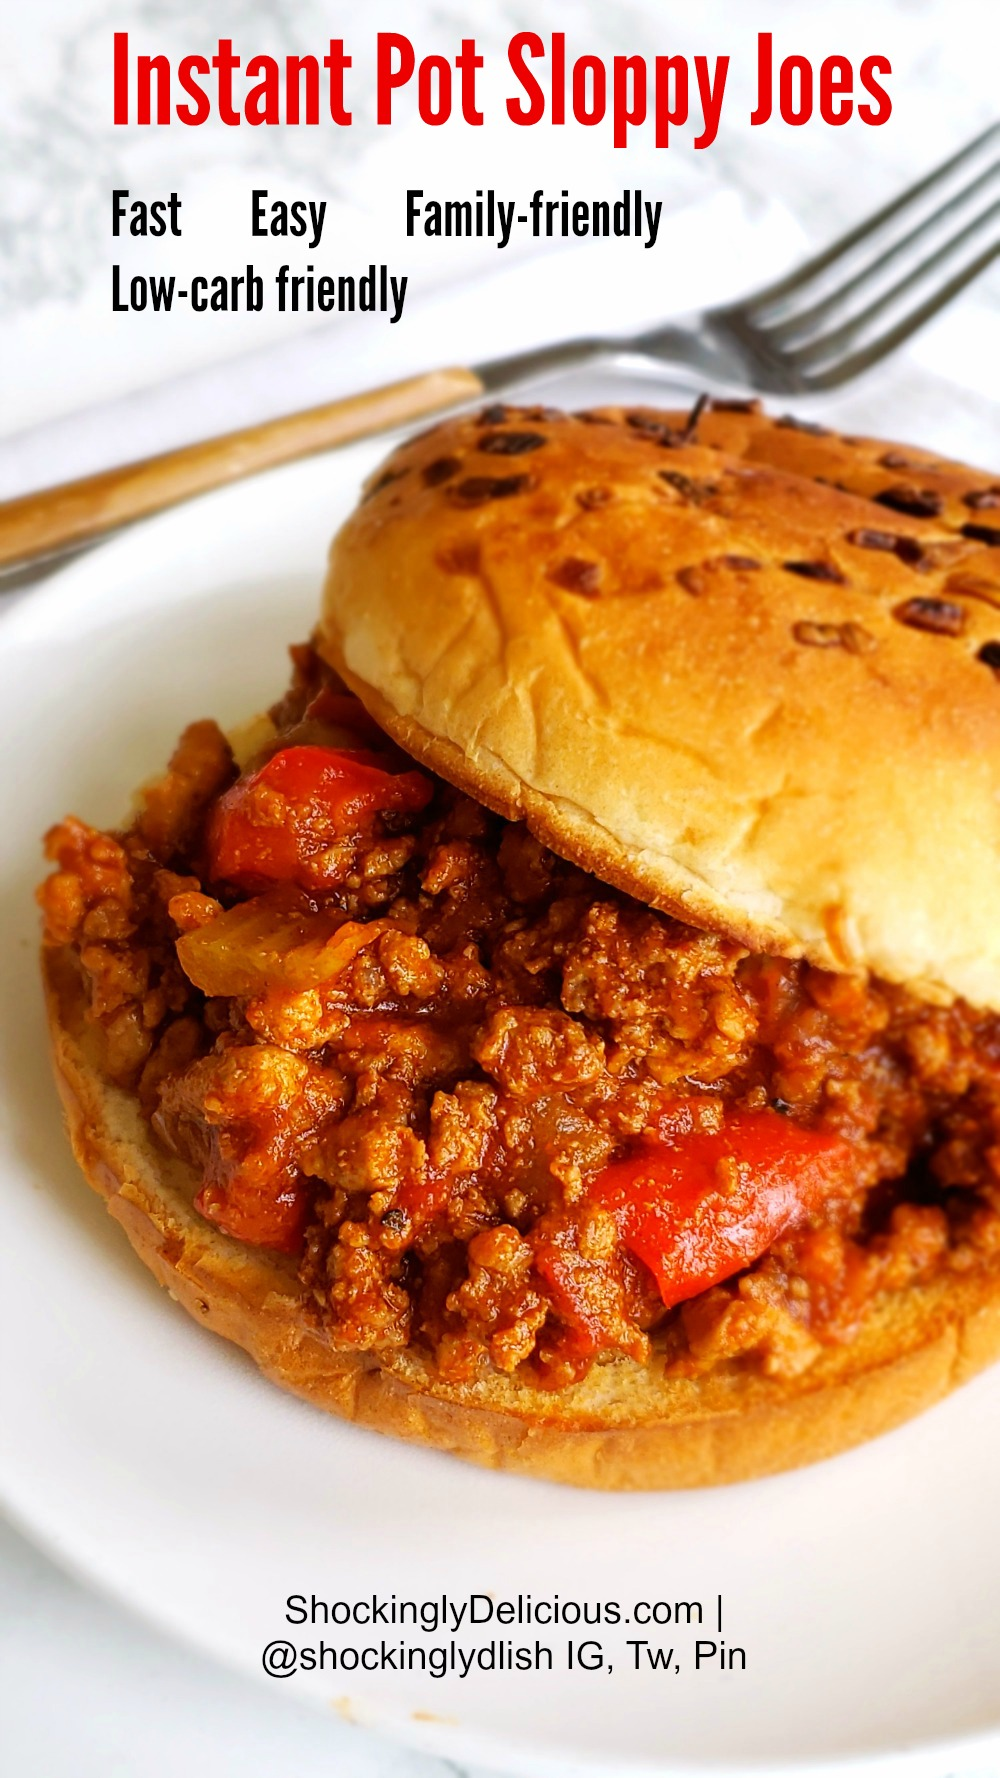 Instant Pot Sloppy Joes on a bun on a white plate with fork alongside